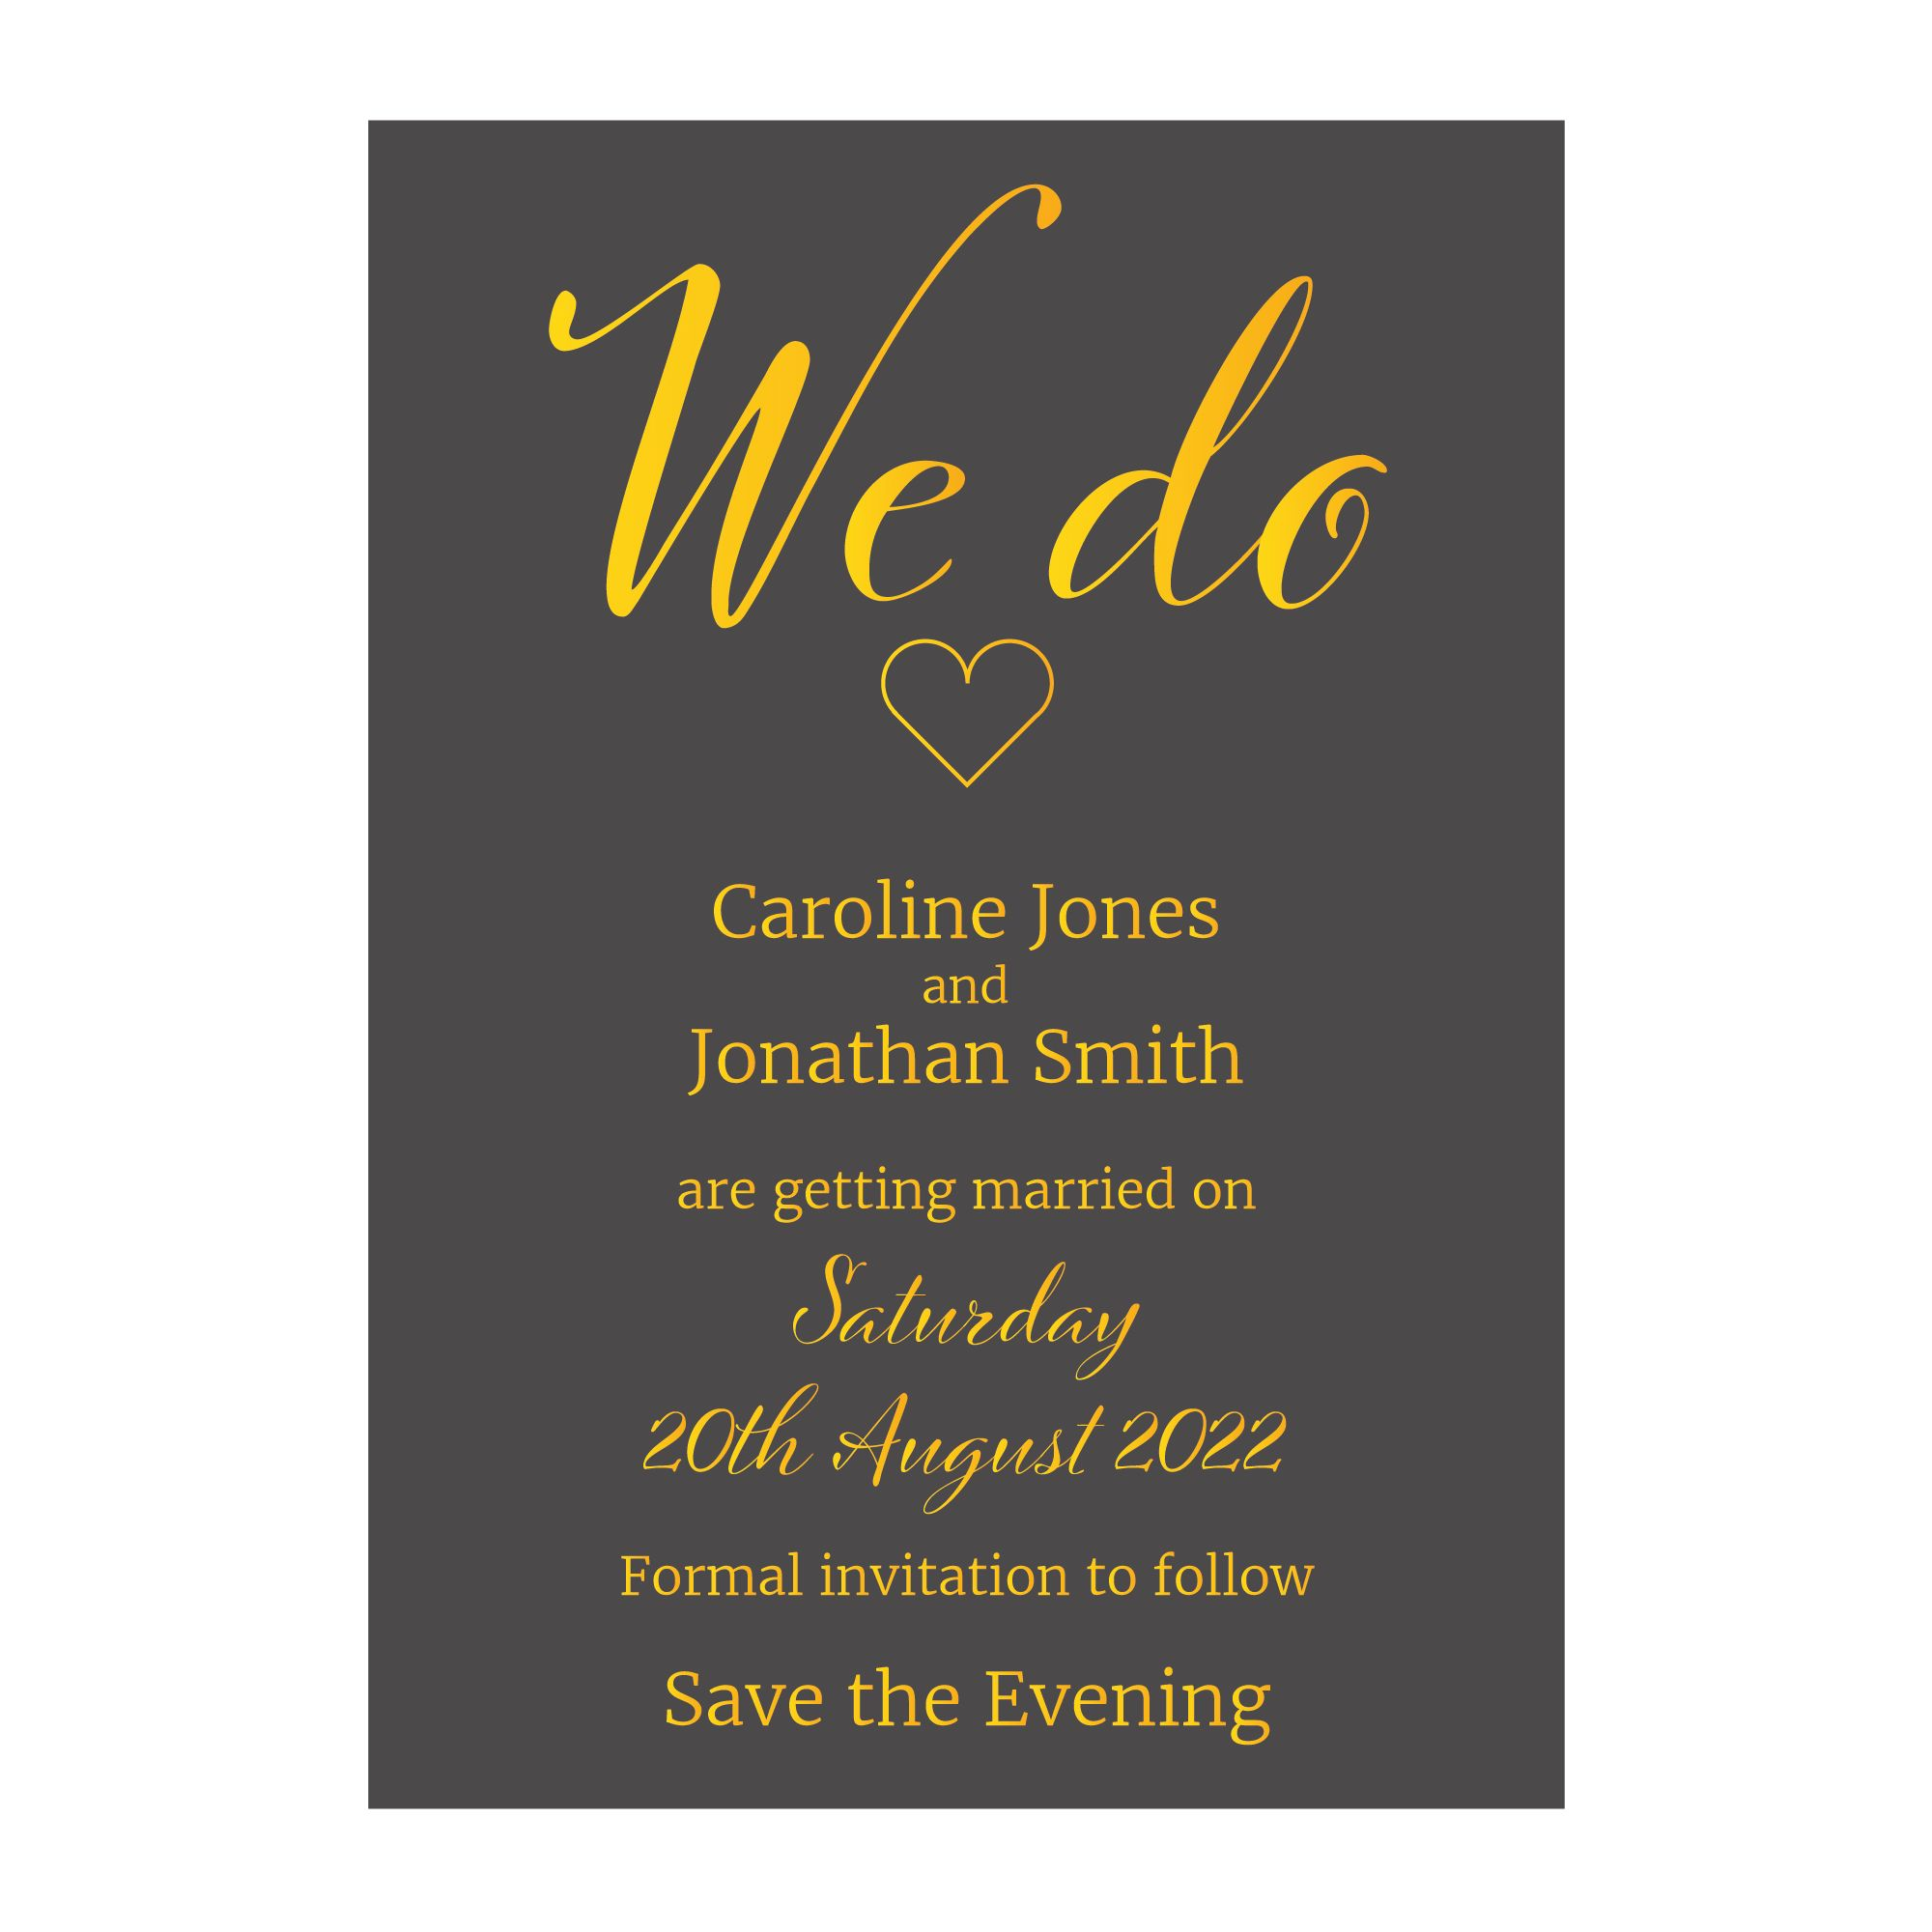 Grey with Gold Foil We Do Wedding Save the Evening Cards